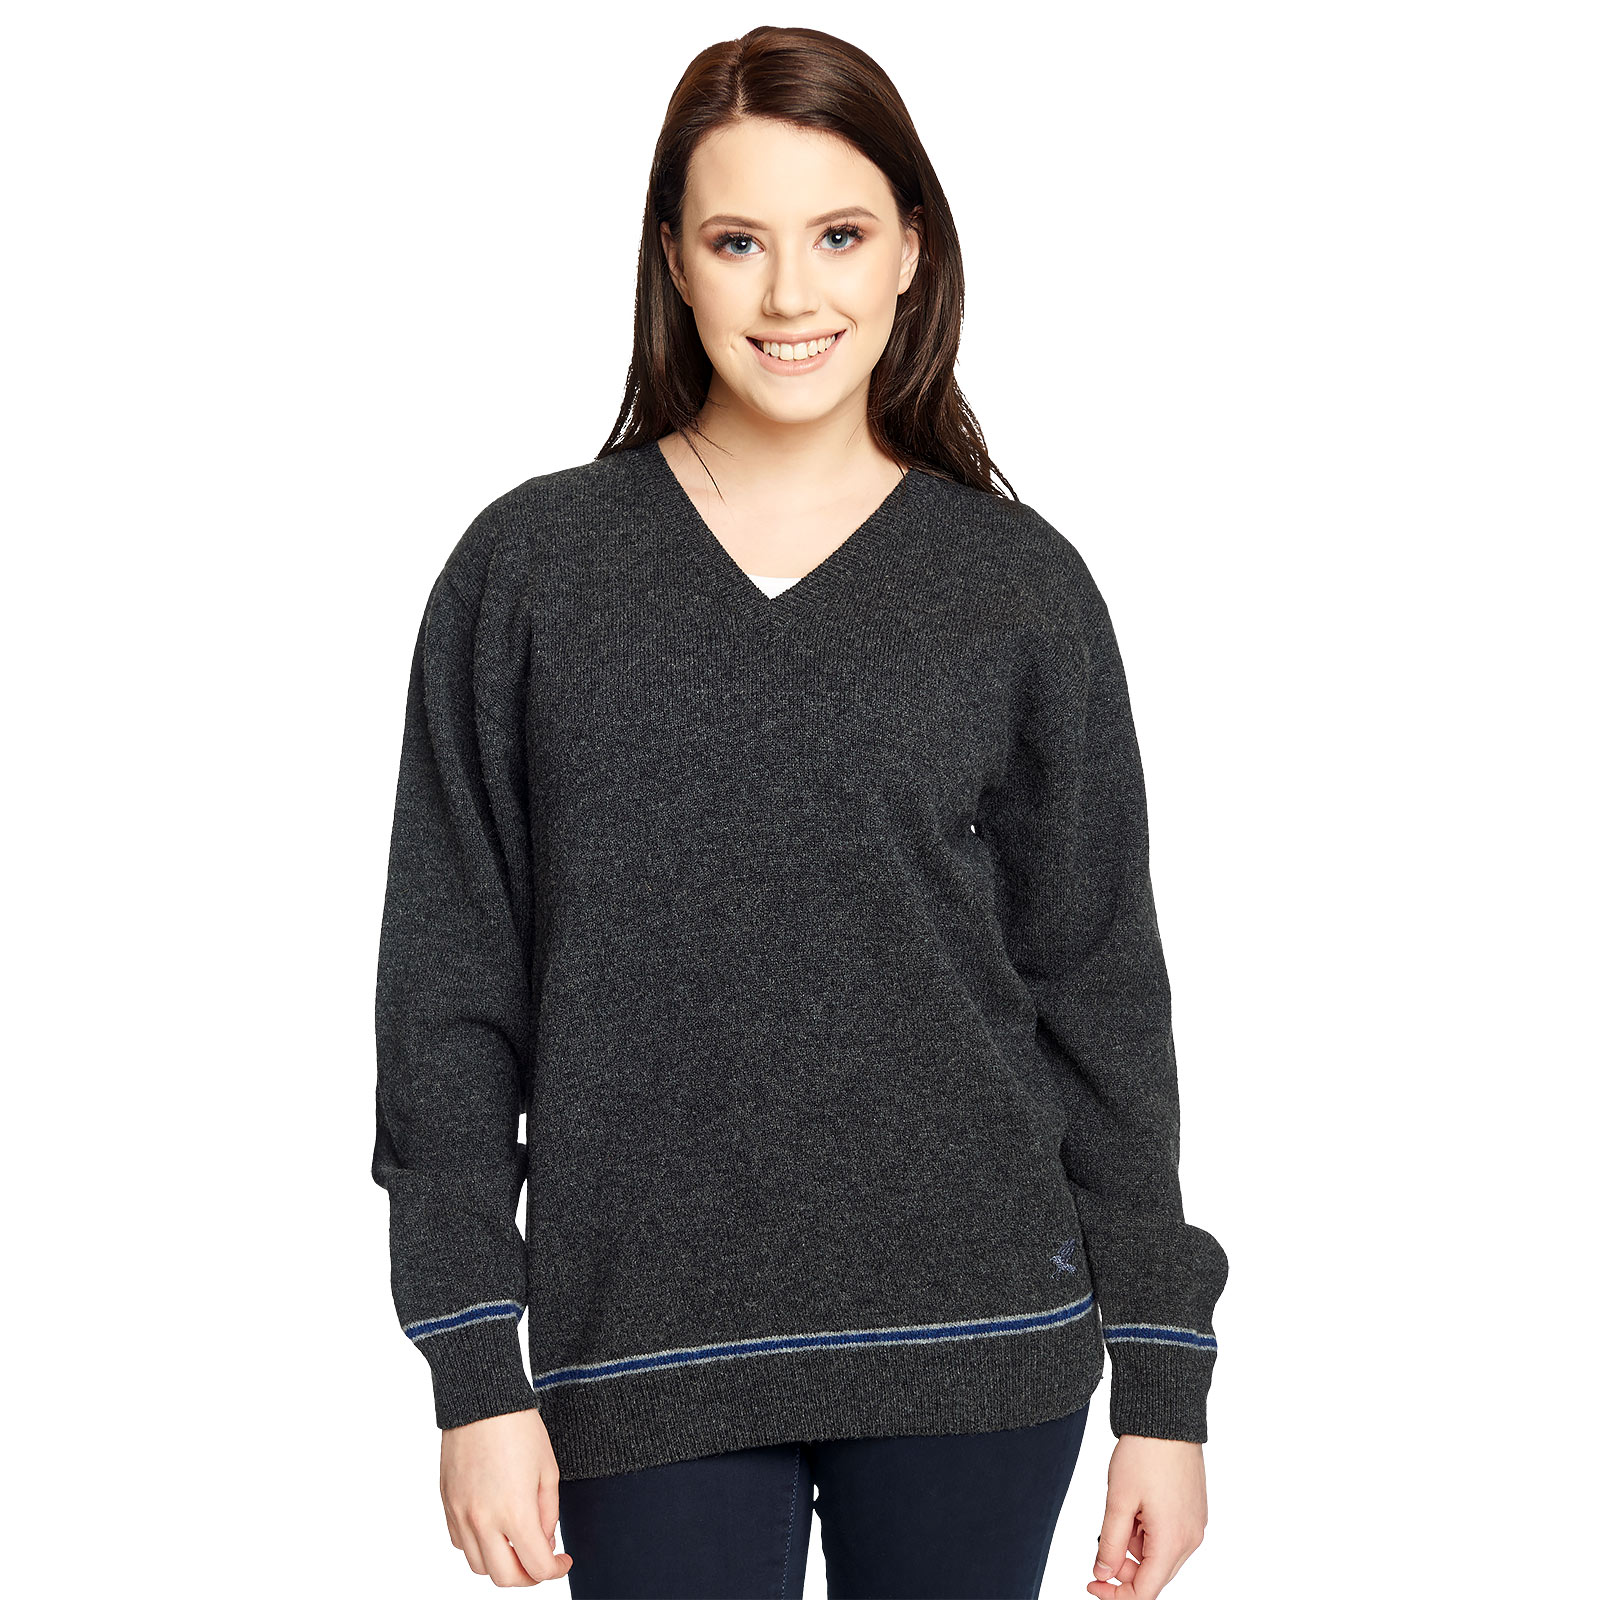 Harry Potter - Ravenclaw Sweater